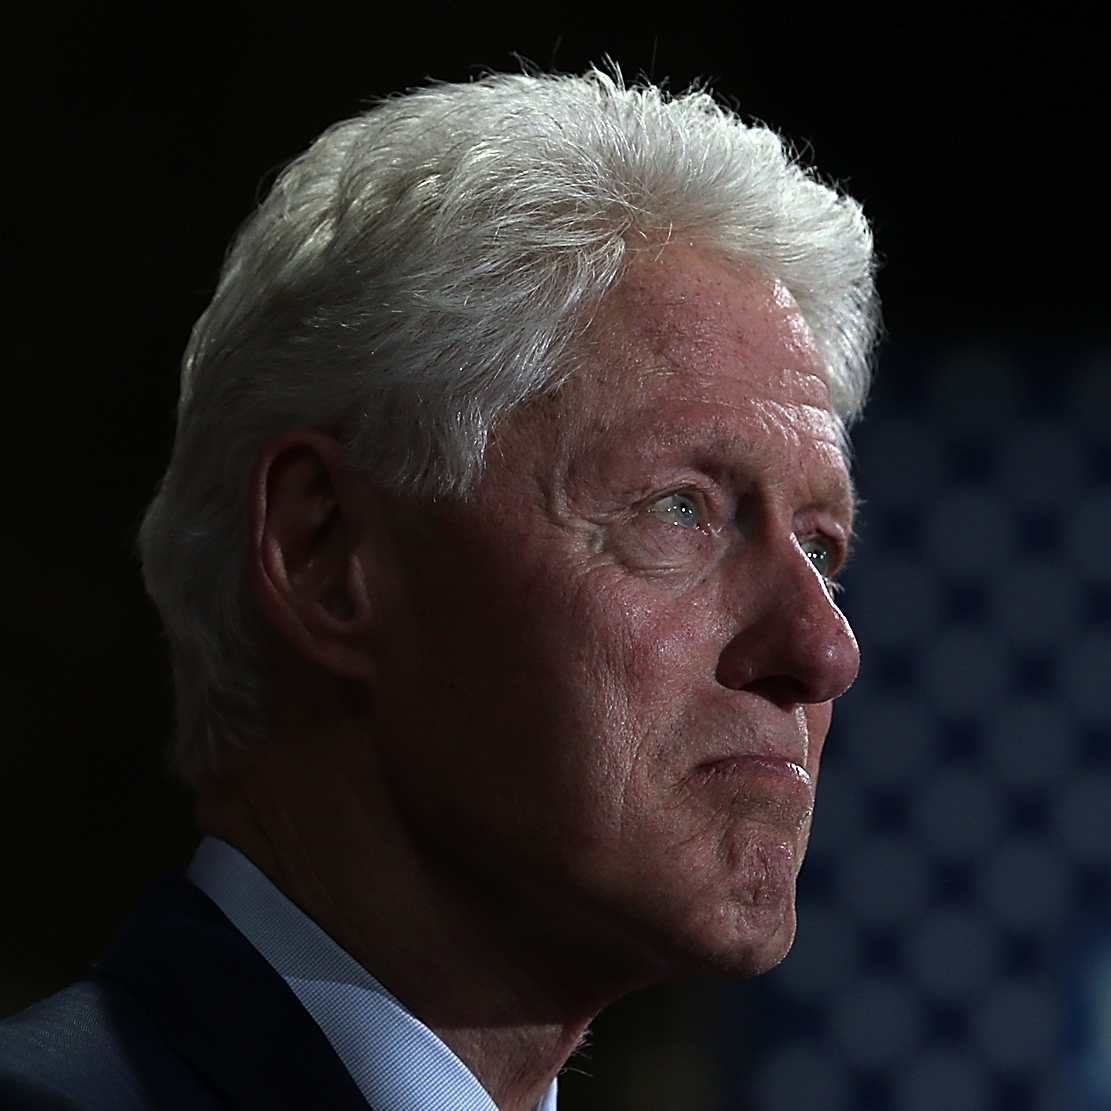 Bill Clinton hosts last charity event amid election scrutiny